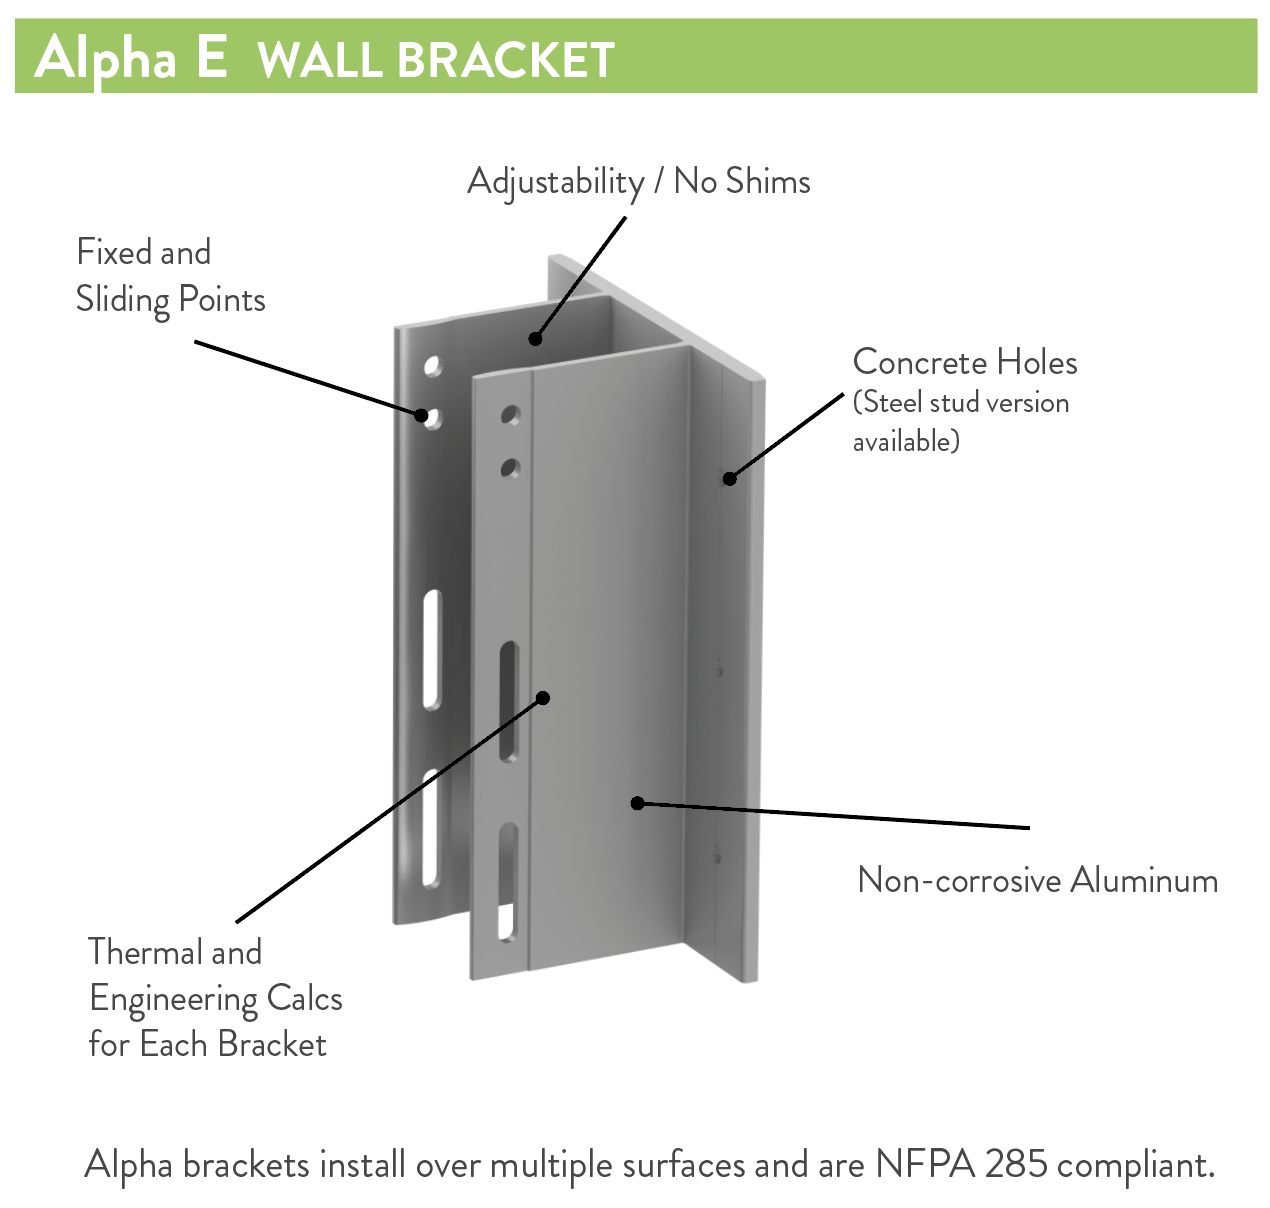 Alpha E Wall Bracket for attachment to floor slabs.